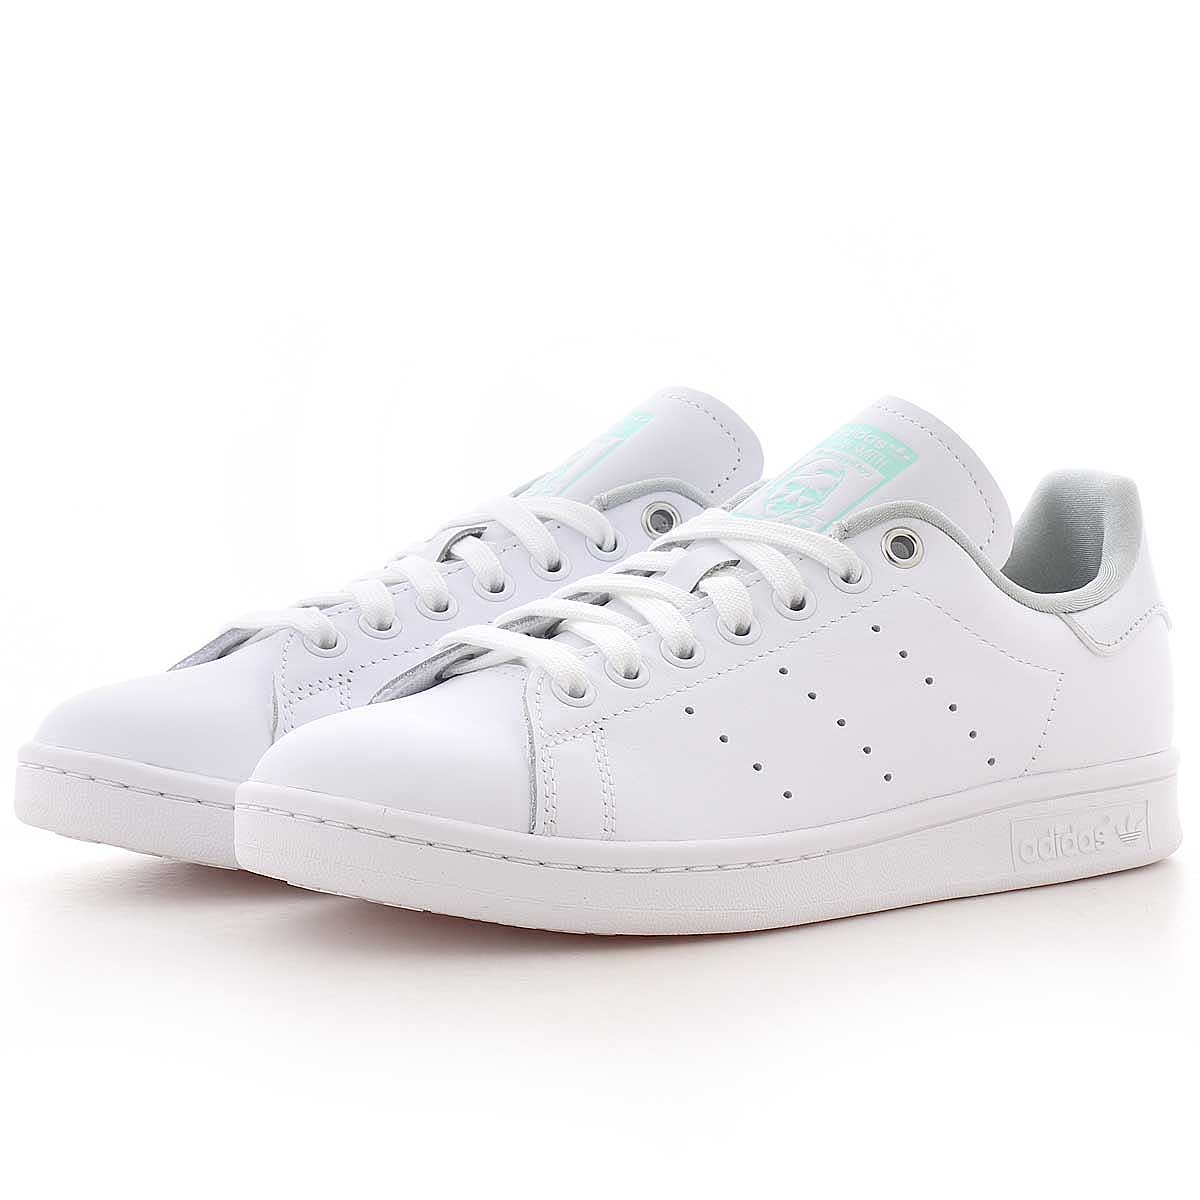 adidas stan smith women